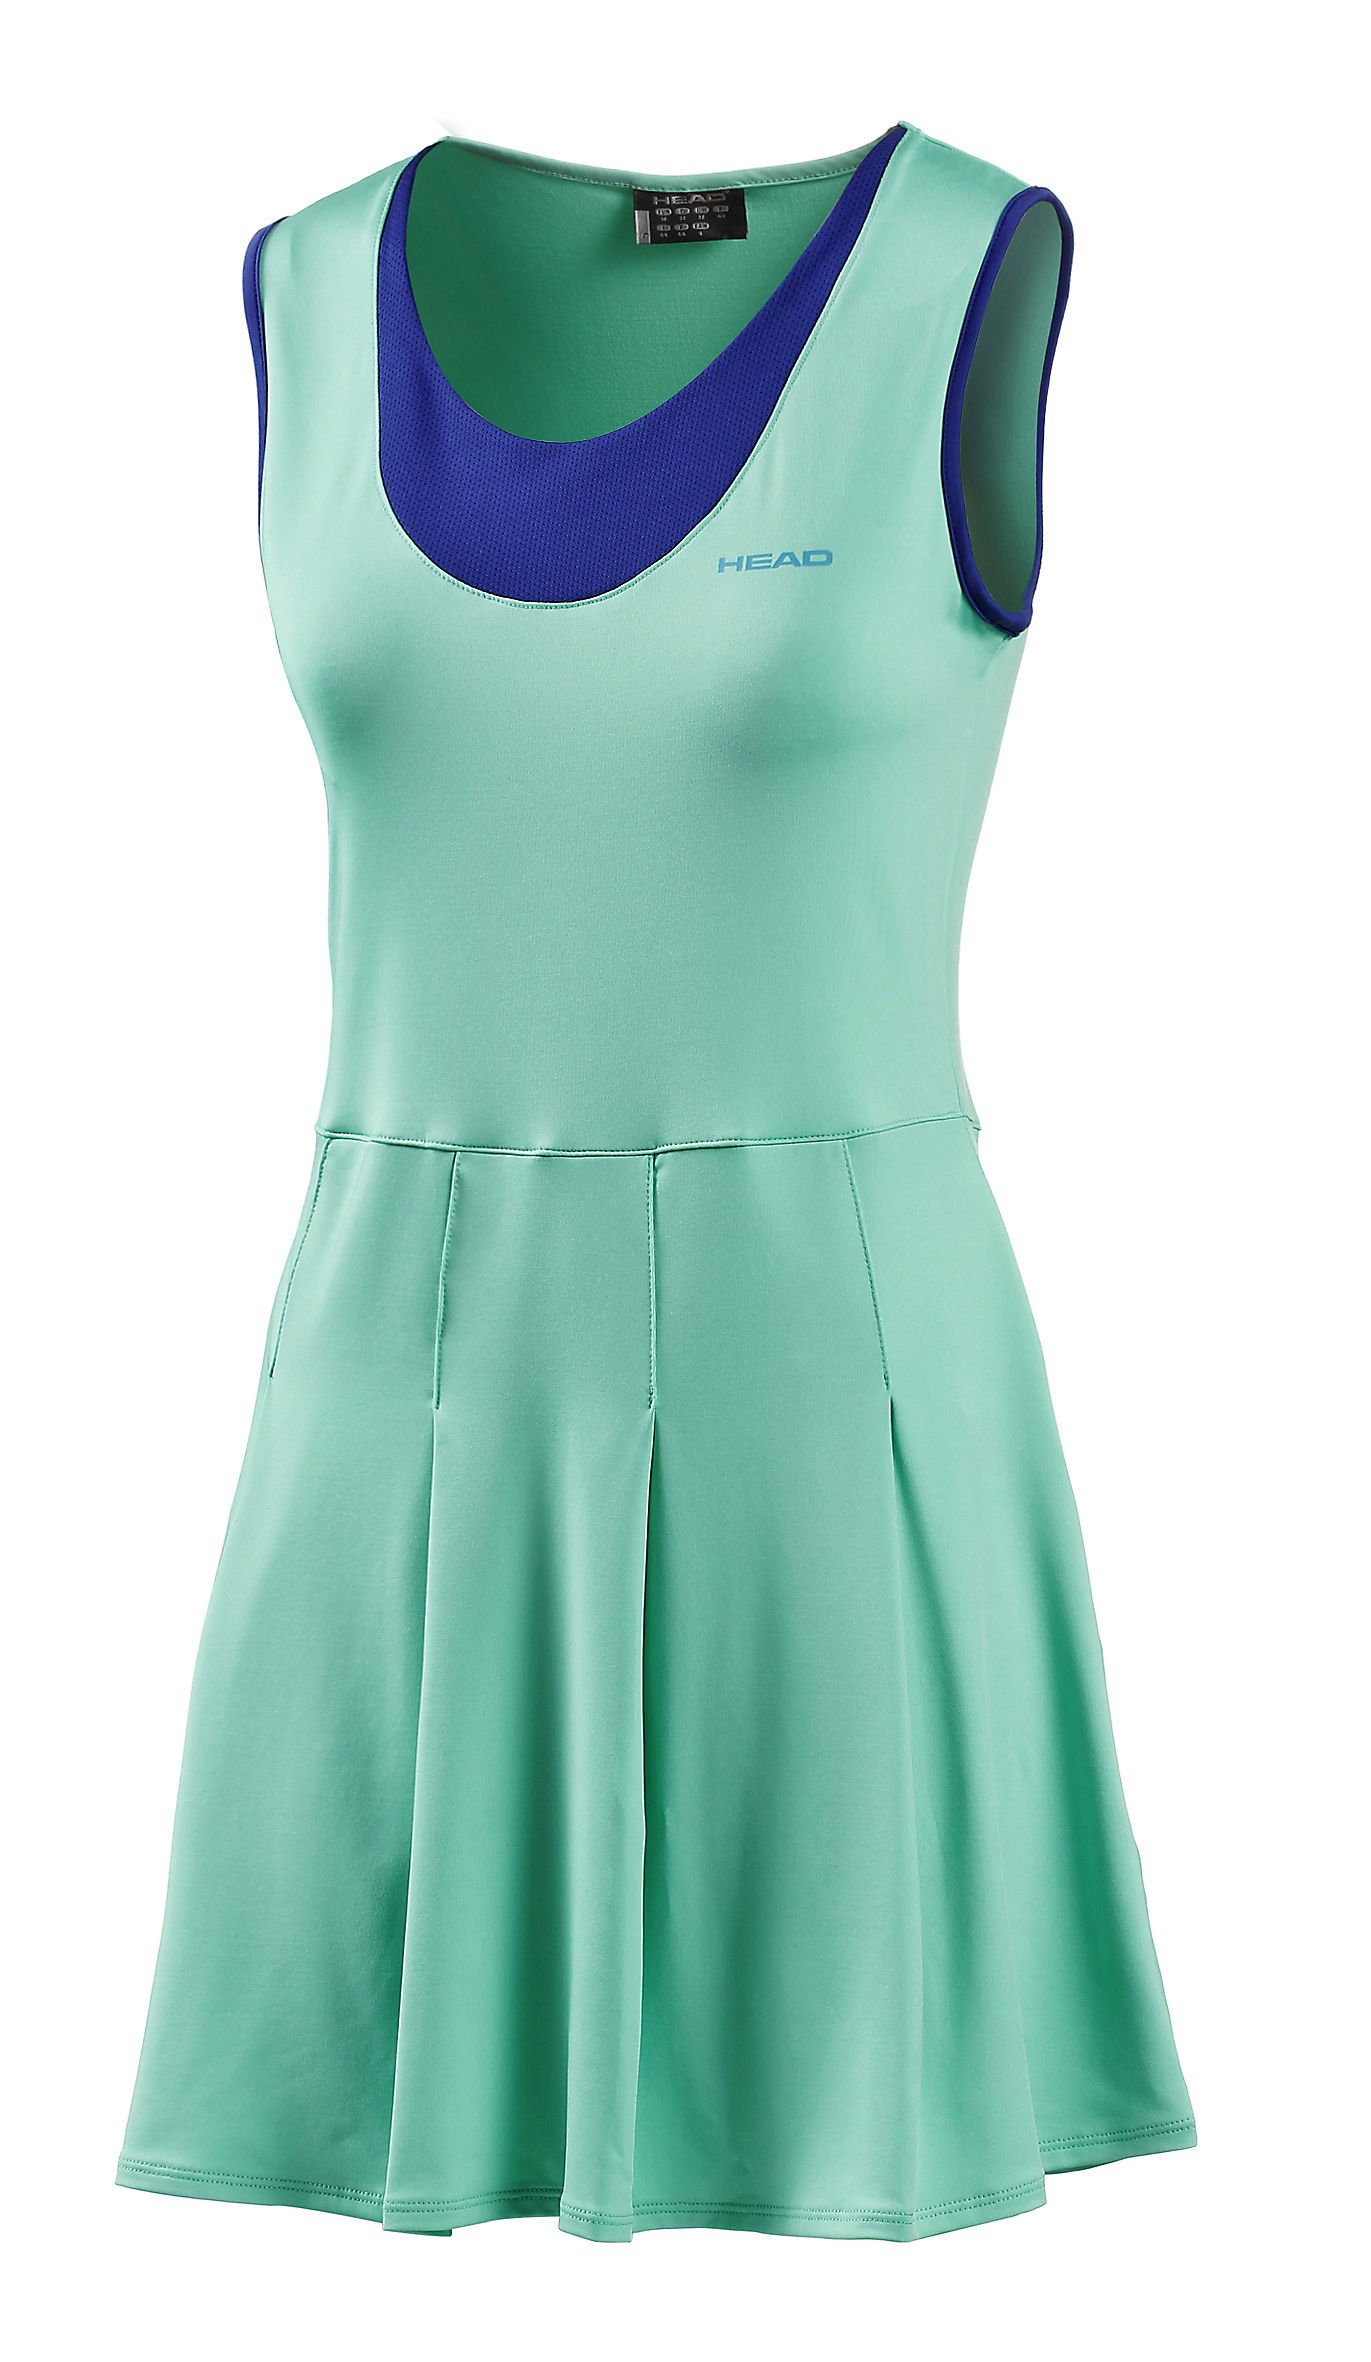 Head - Vestido pádel dual, talla s, color azul / verde: Amazon.es ...